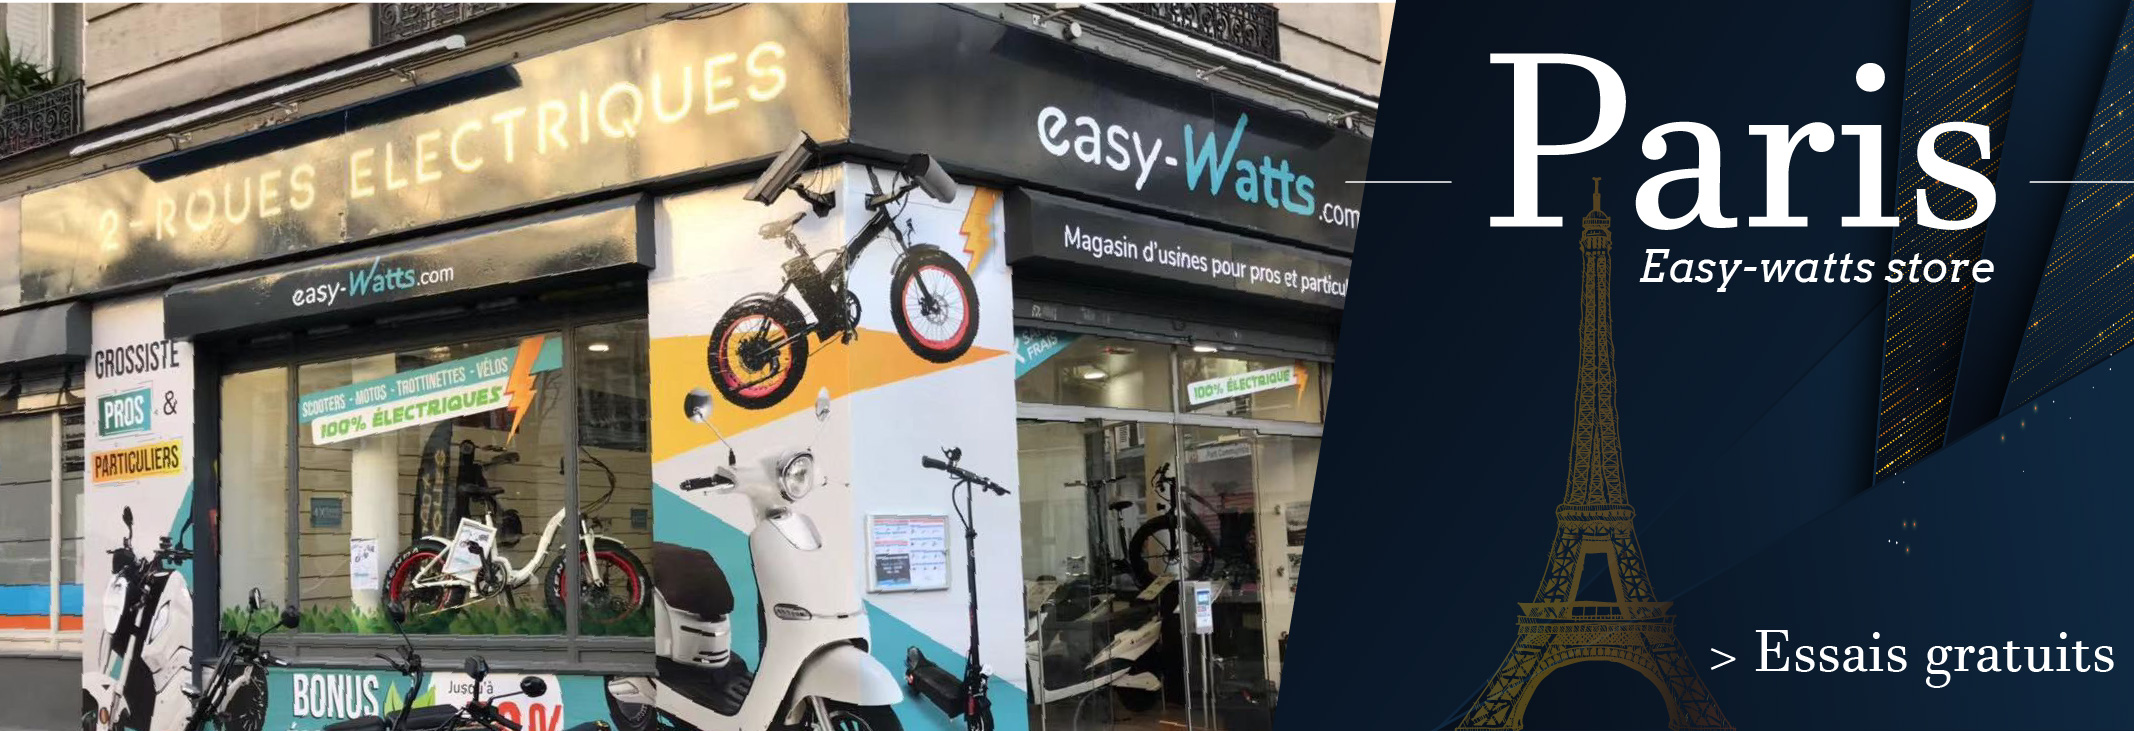 Magasin scooter electrique paris 11eme store showroom